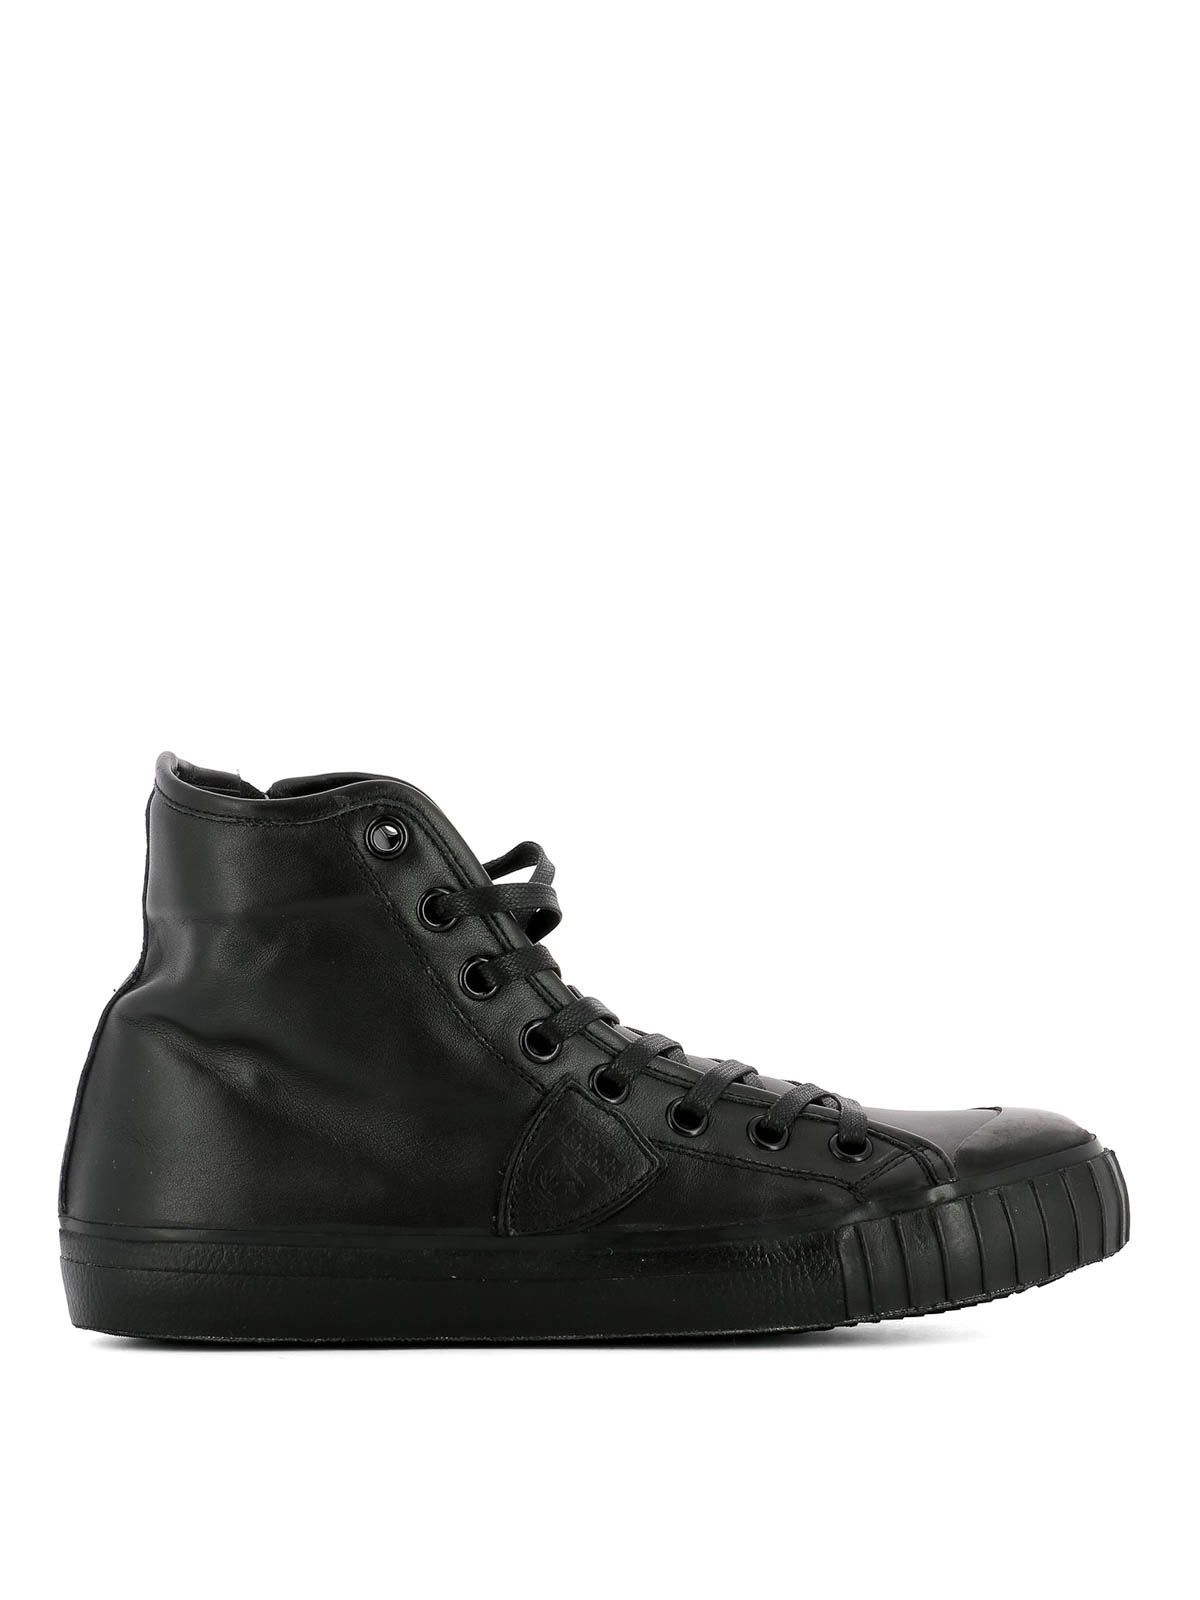 gare high top leather sneakers by philippe model trainers ikrix. Black Bedroom Furniture Sets. Home Design Ideas